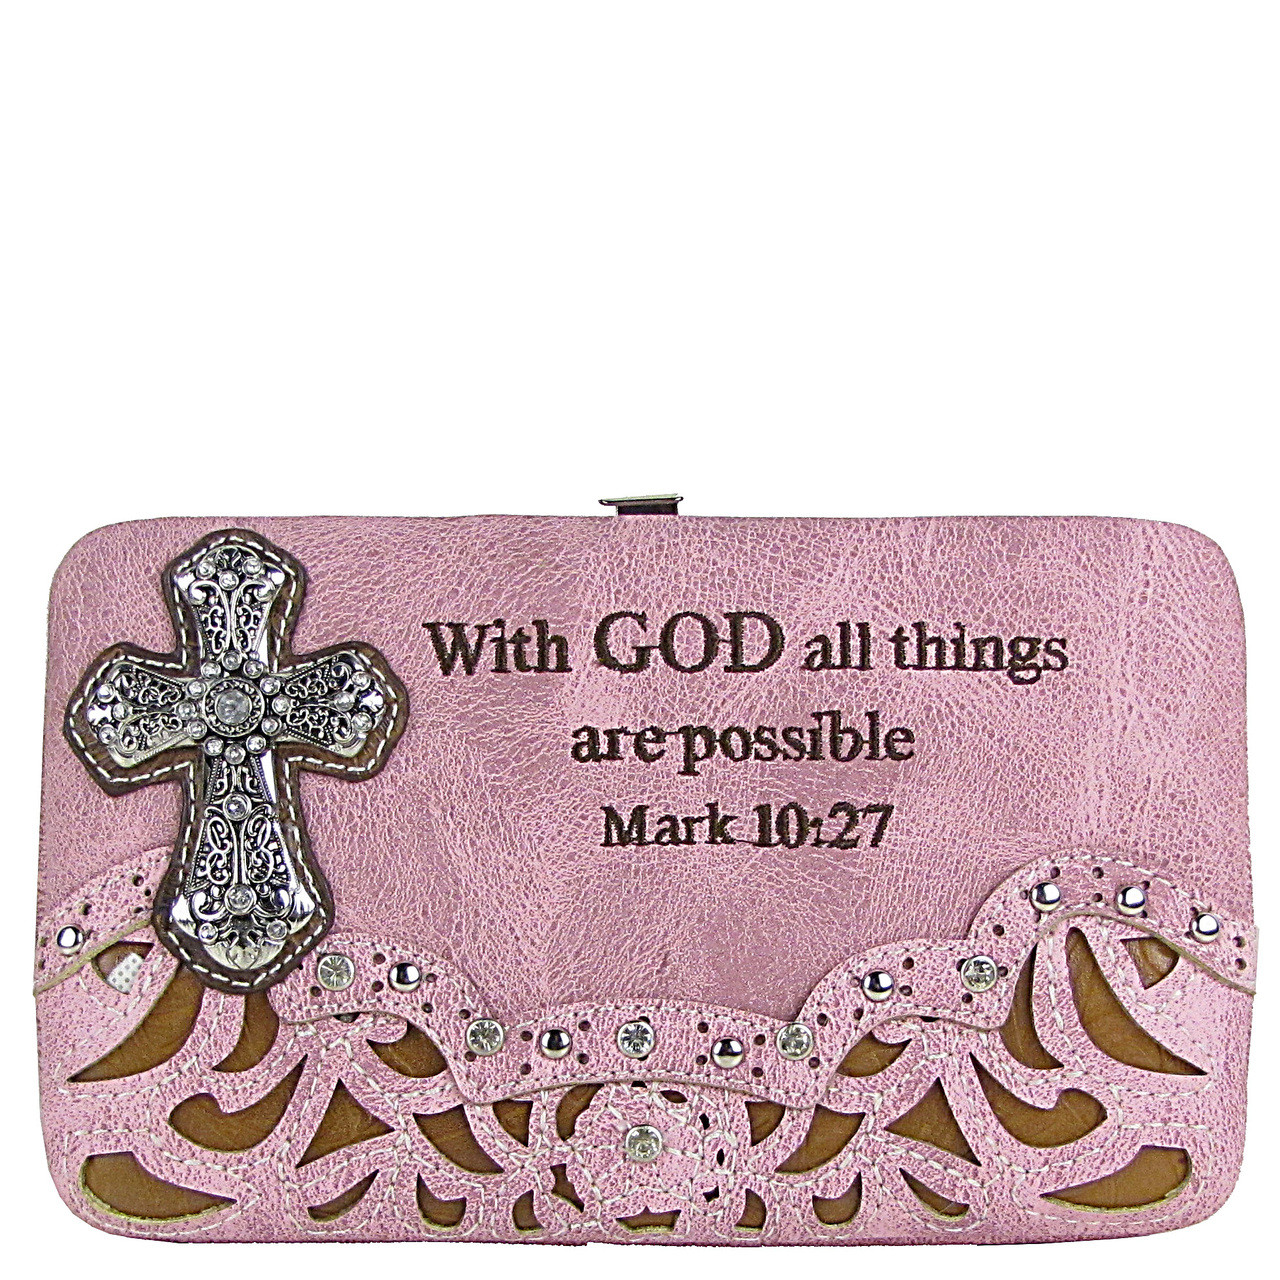 PINK STUDDED RHINESTONE TOOLED CROSS WITH VERSE LOOK FLAT THICK WALLET FW2-04119PNK